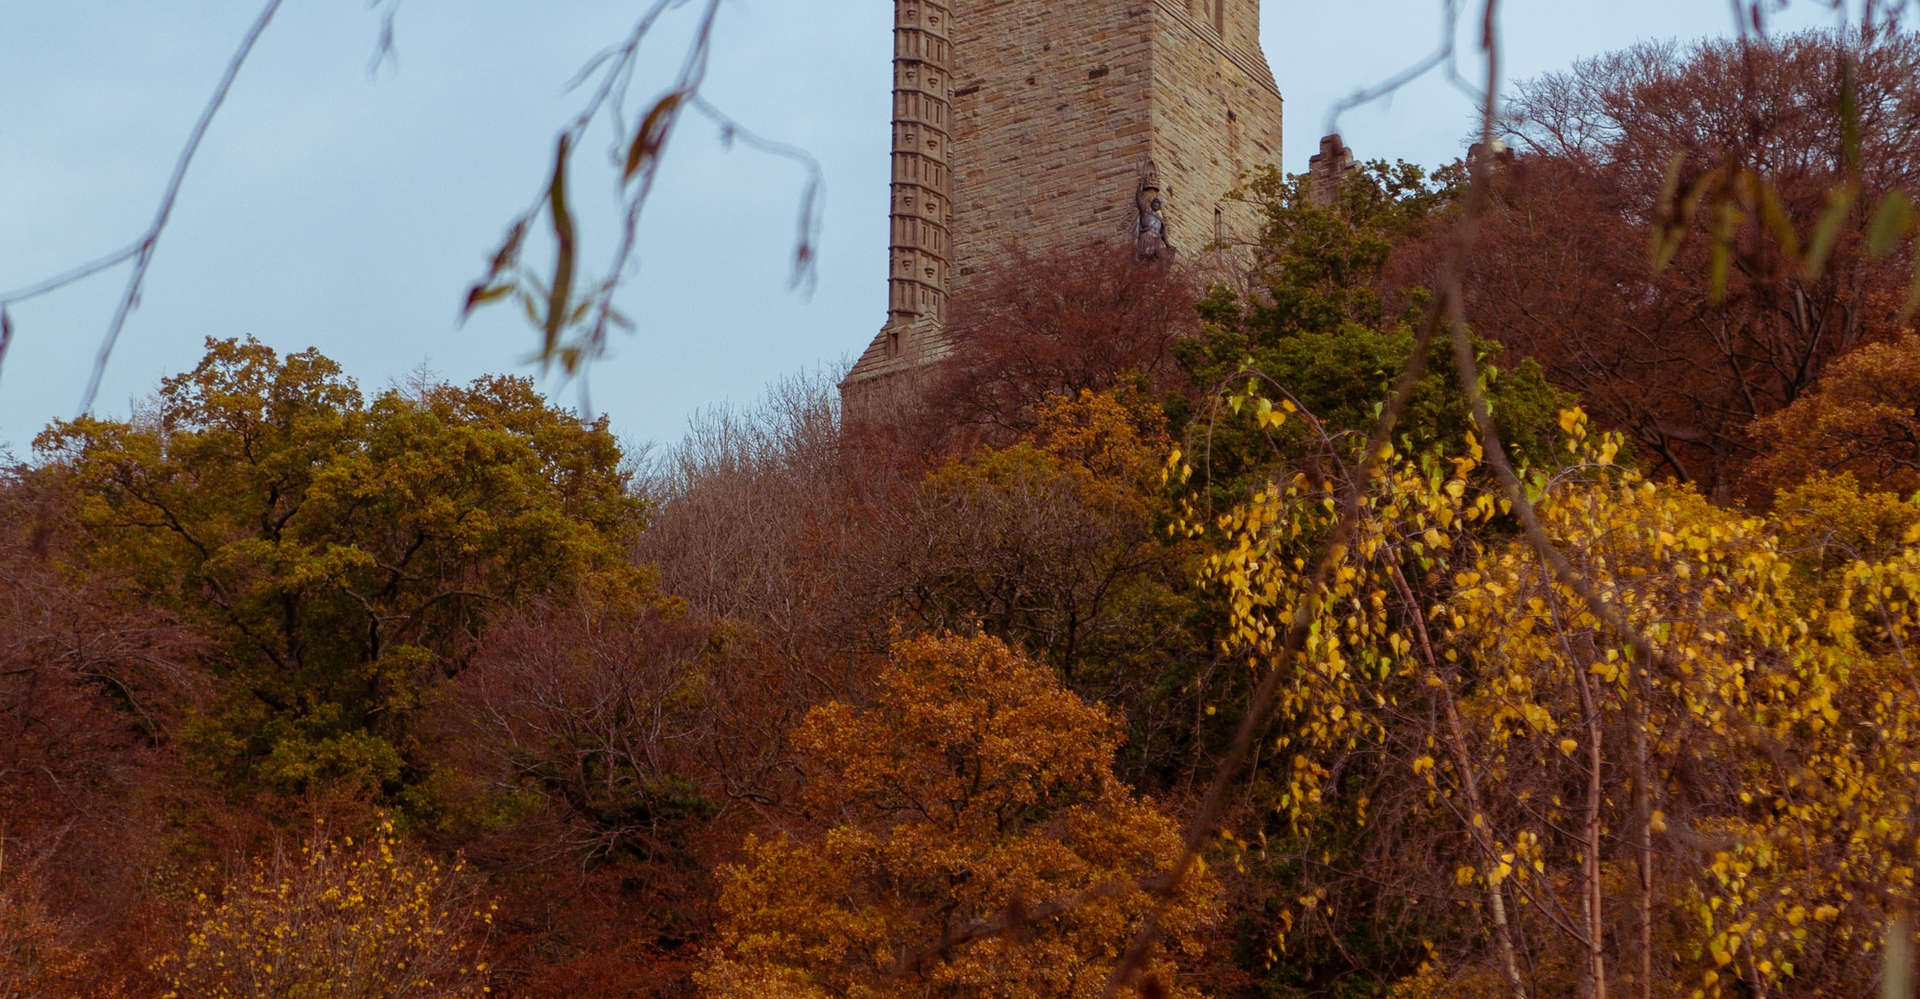 National Wallace Monument in stirling, scotland